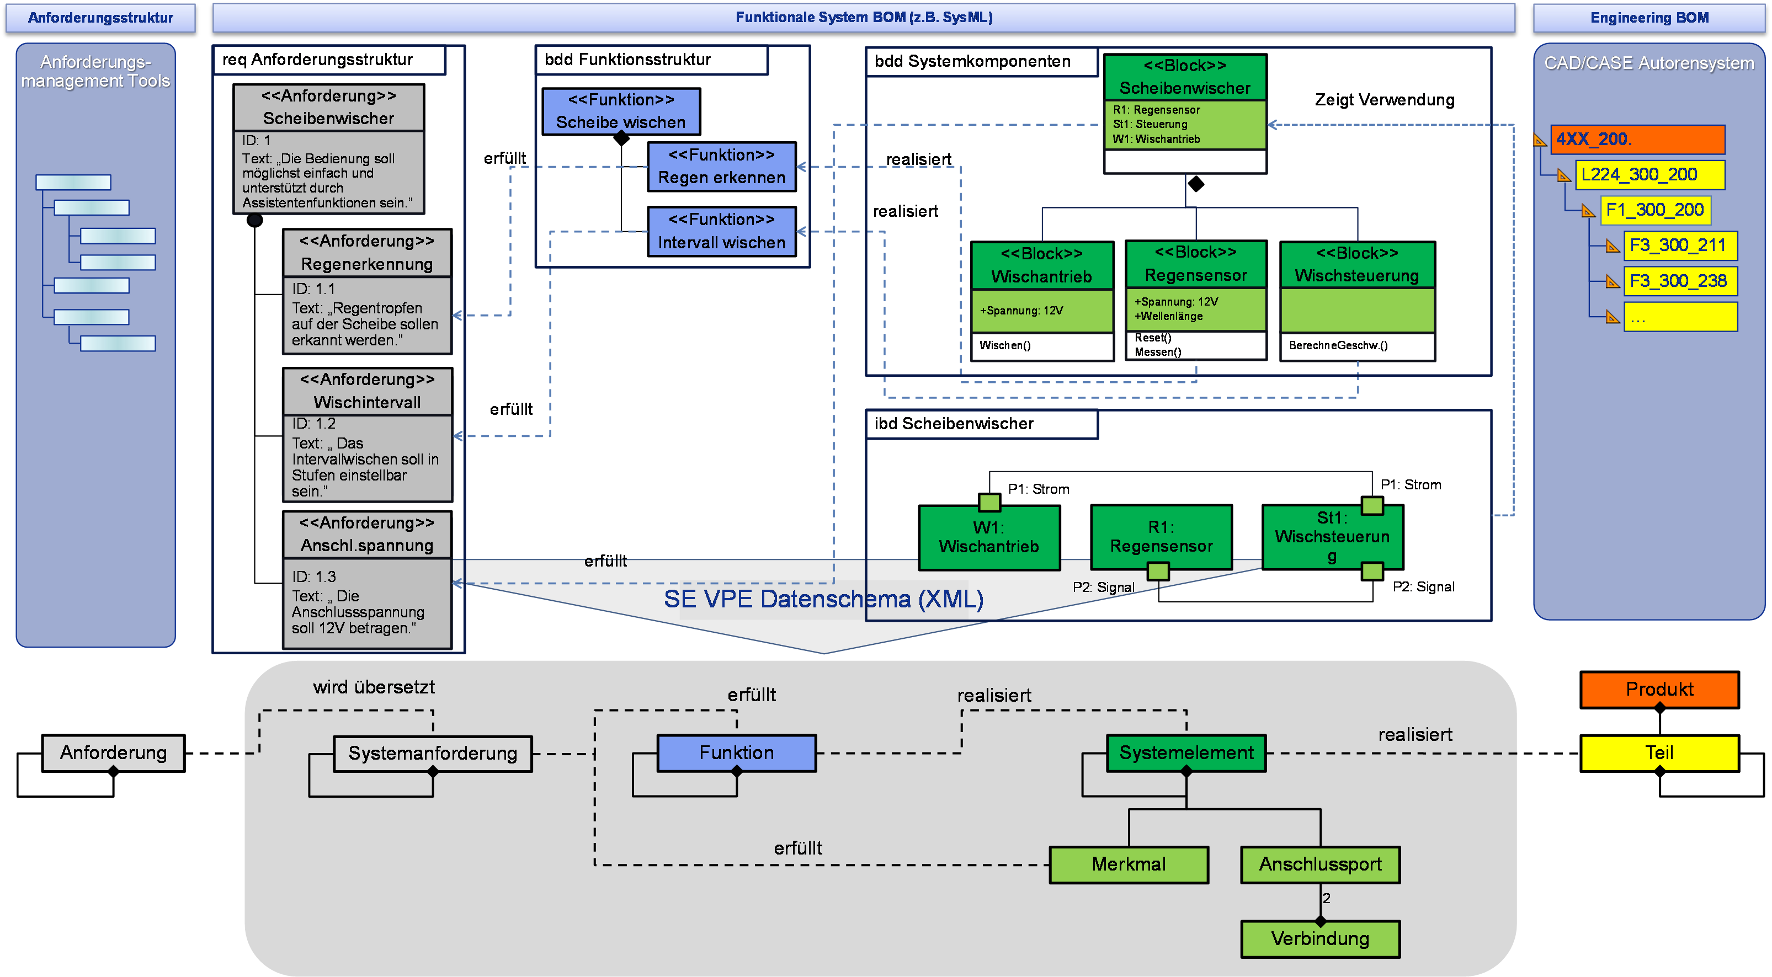 Core concept of SE VPE data model